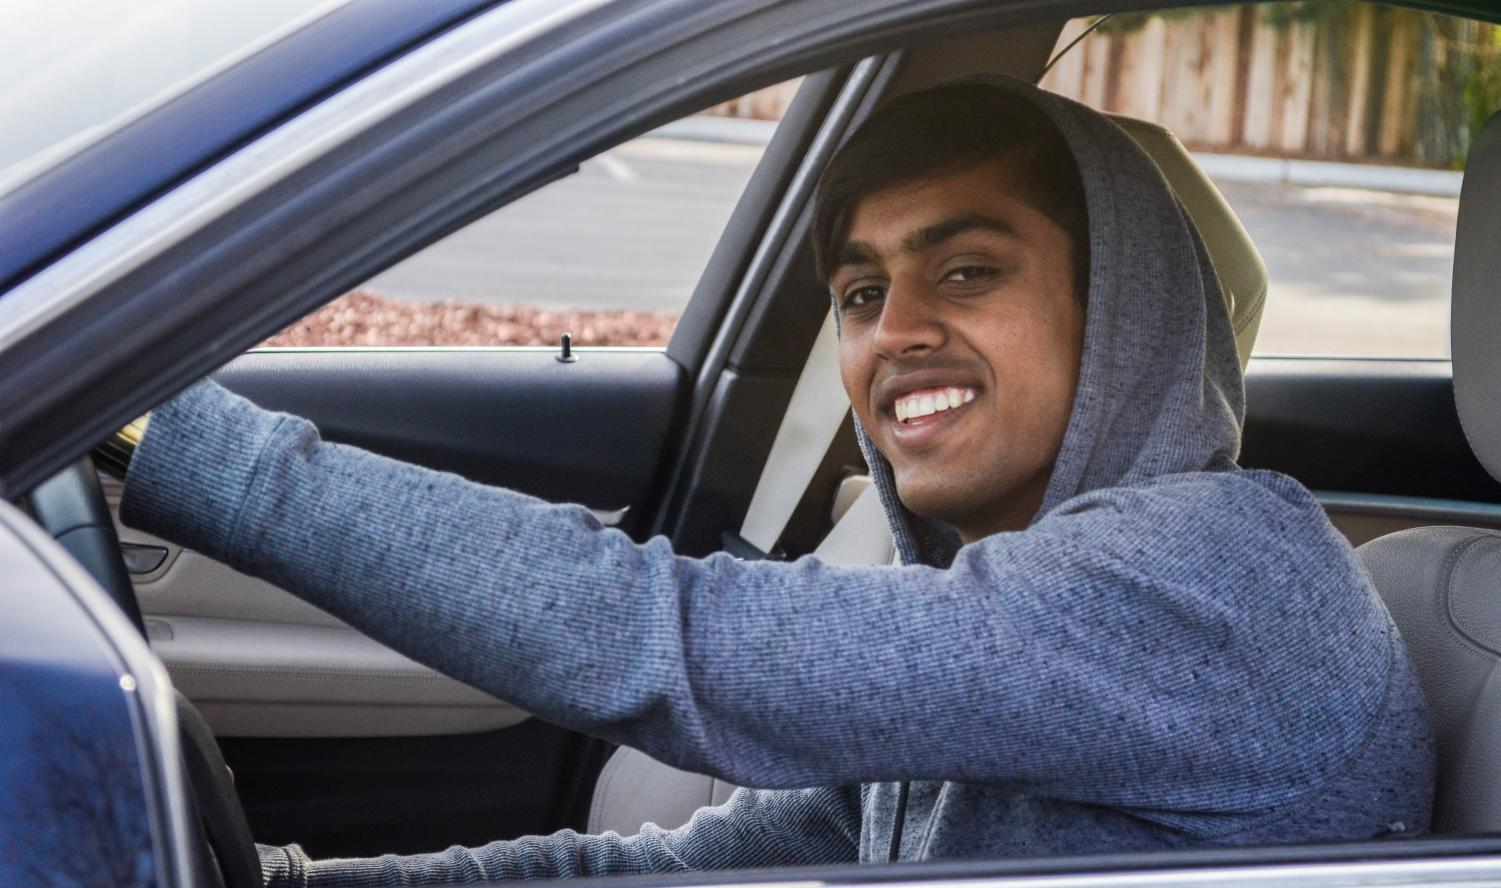 """First, I start at my house,"" Sparsh Chauhan (12) said. ""Then, I turn on Saratoga, and it's always crowded with traffic and stuff. That's when I'm setting the music, checking the tire pressure, the gas. After downtown, the road gets smooth, which is when I put the windows down. I go all the way down until there's a dip and then I go back. Even when I have stuff to do, I drive that same route every day. I don't have to take directions. I know all the traffic times; I know exactly where I'm going."""